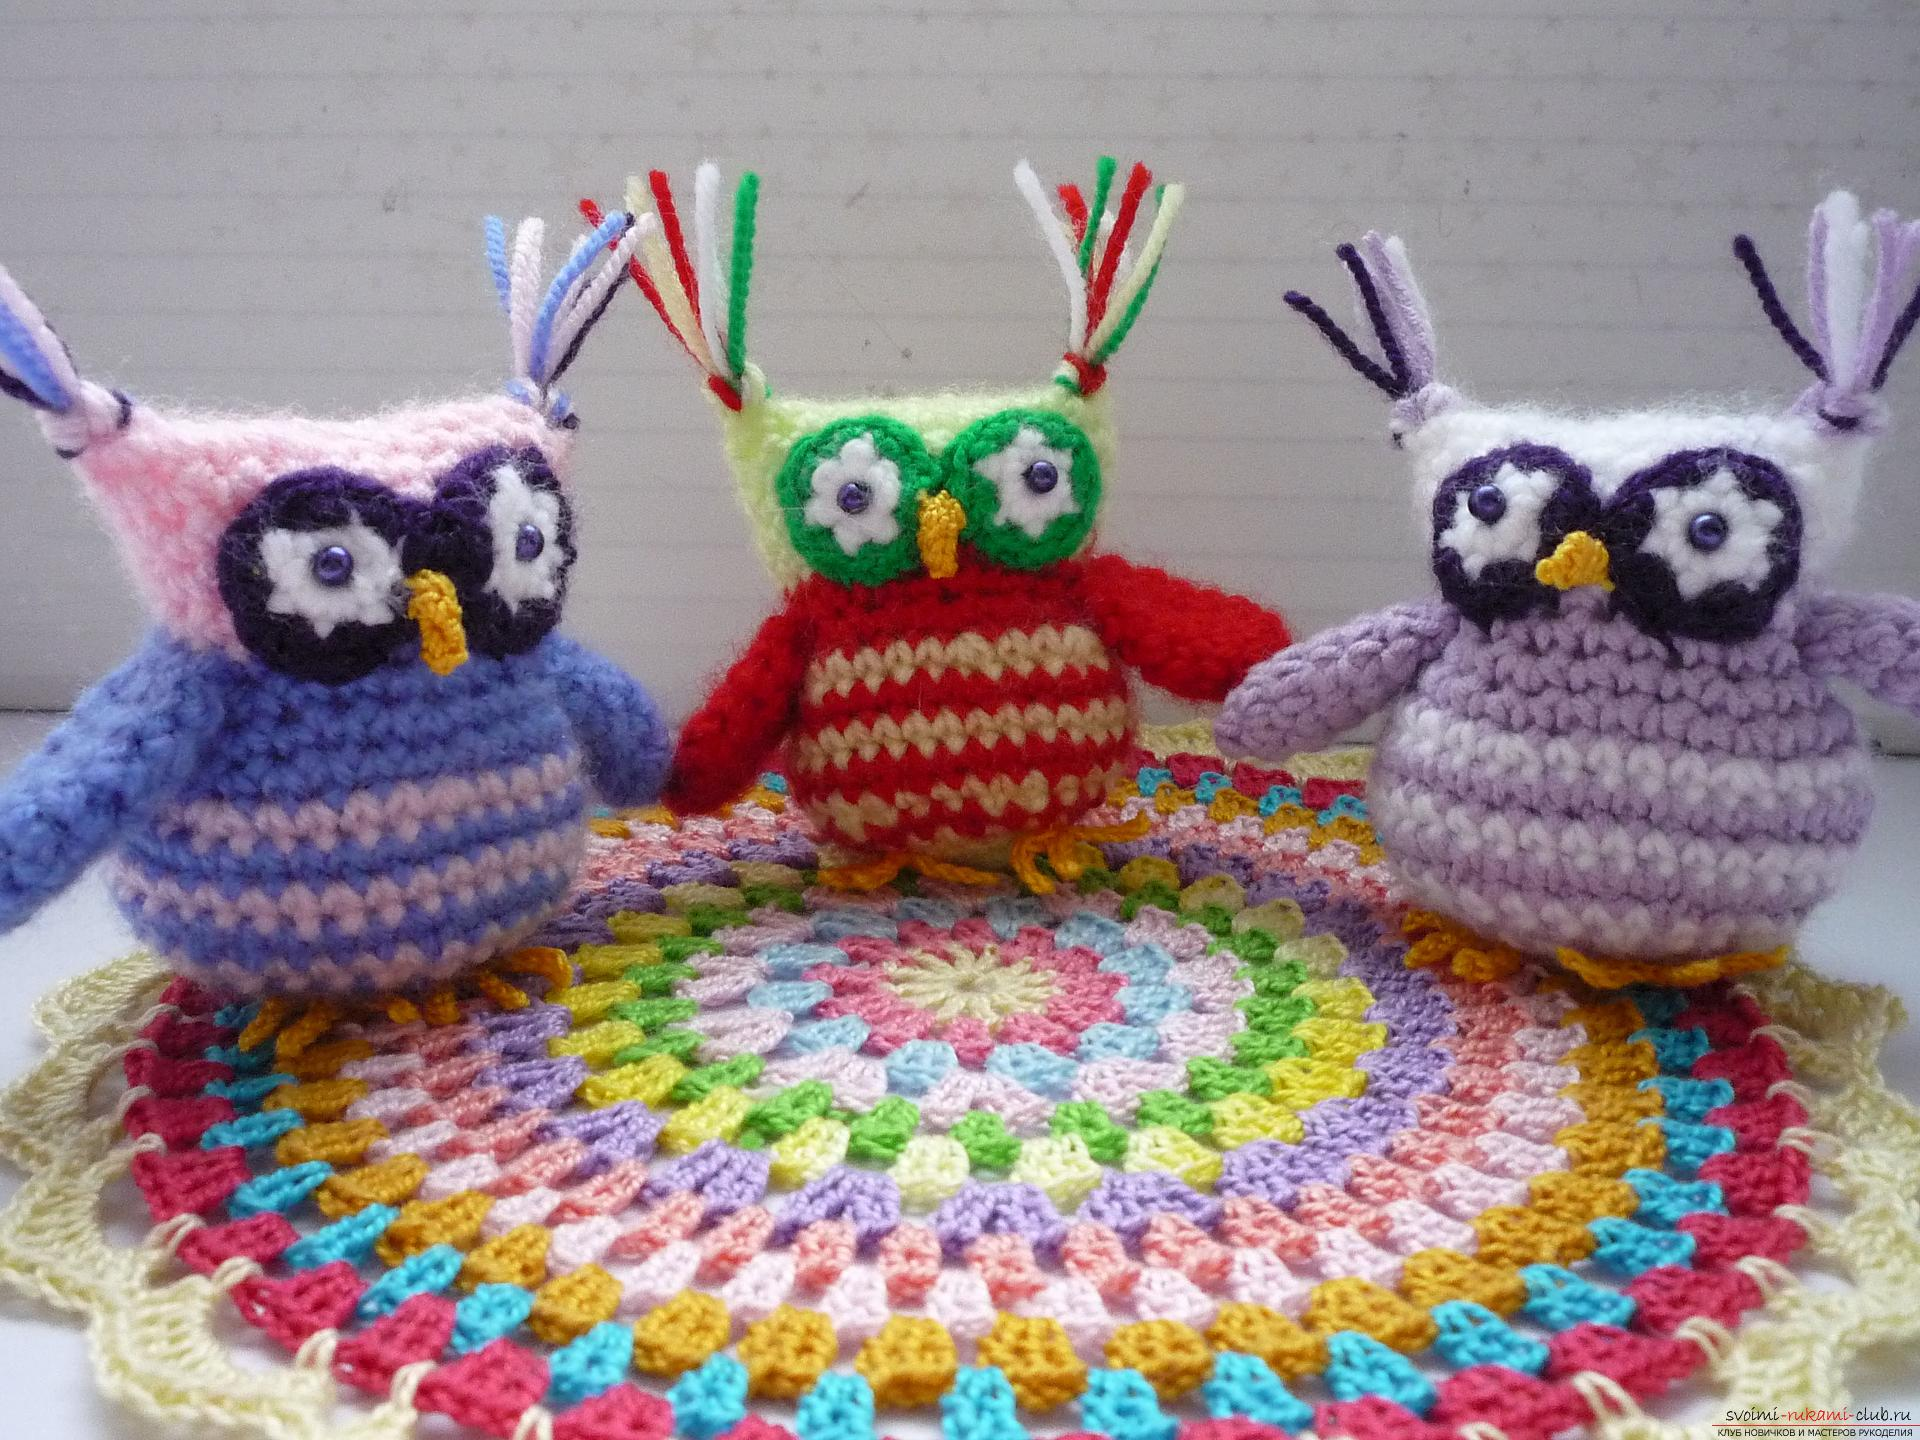 A detailed master-class will teach how to crochet a toy - an amenity in the amigurumi style. Photo Number 21